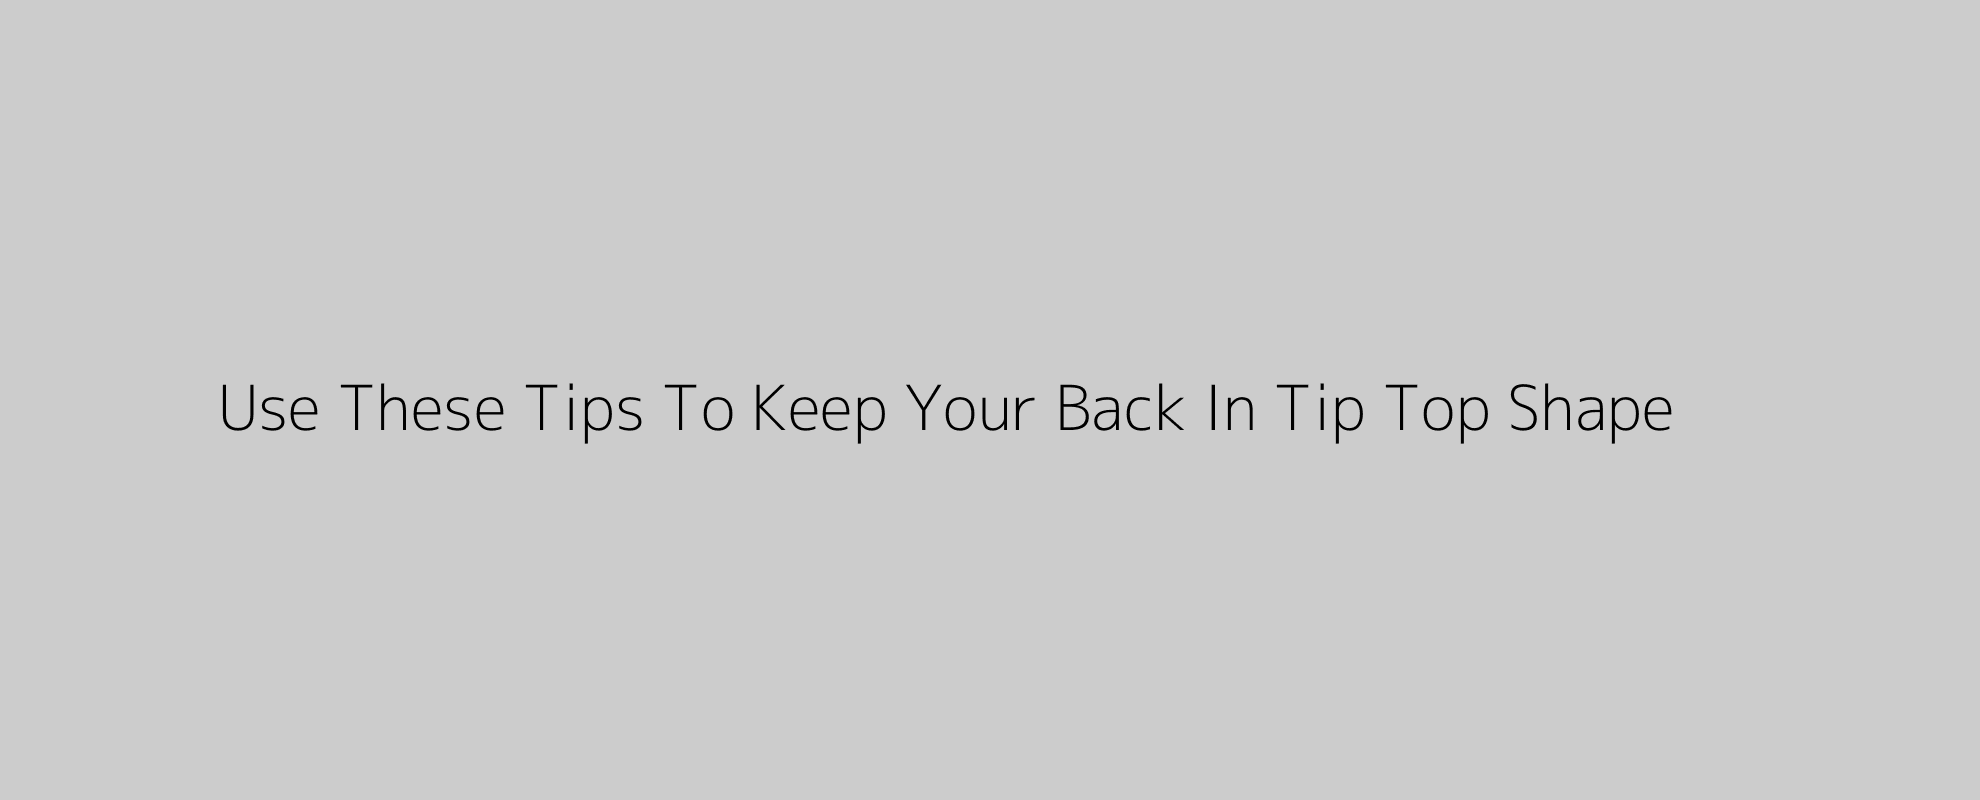 Use These Tips To Keep Your Back In Tip Top Shape